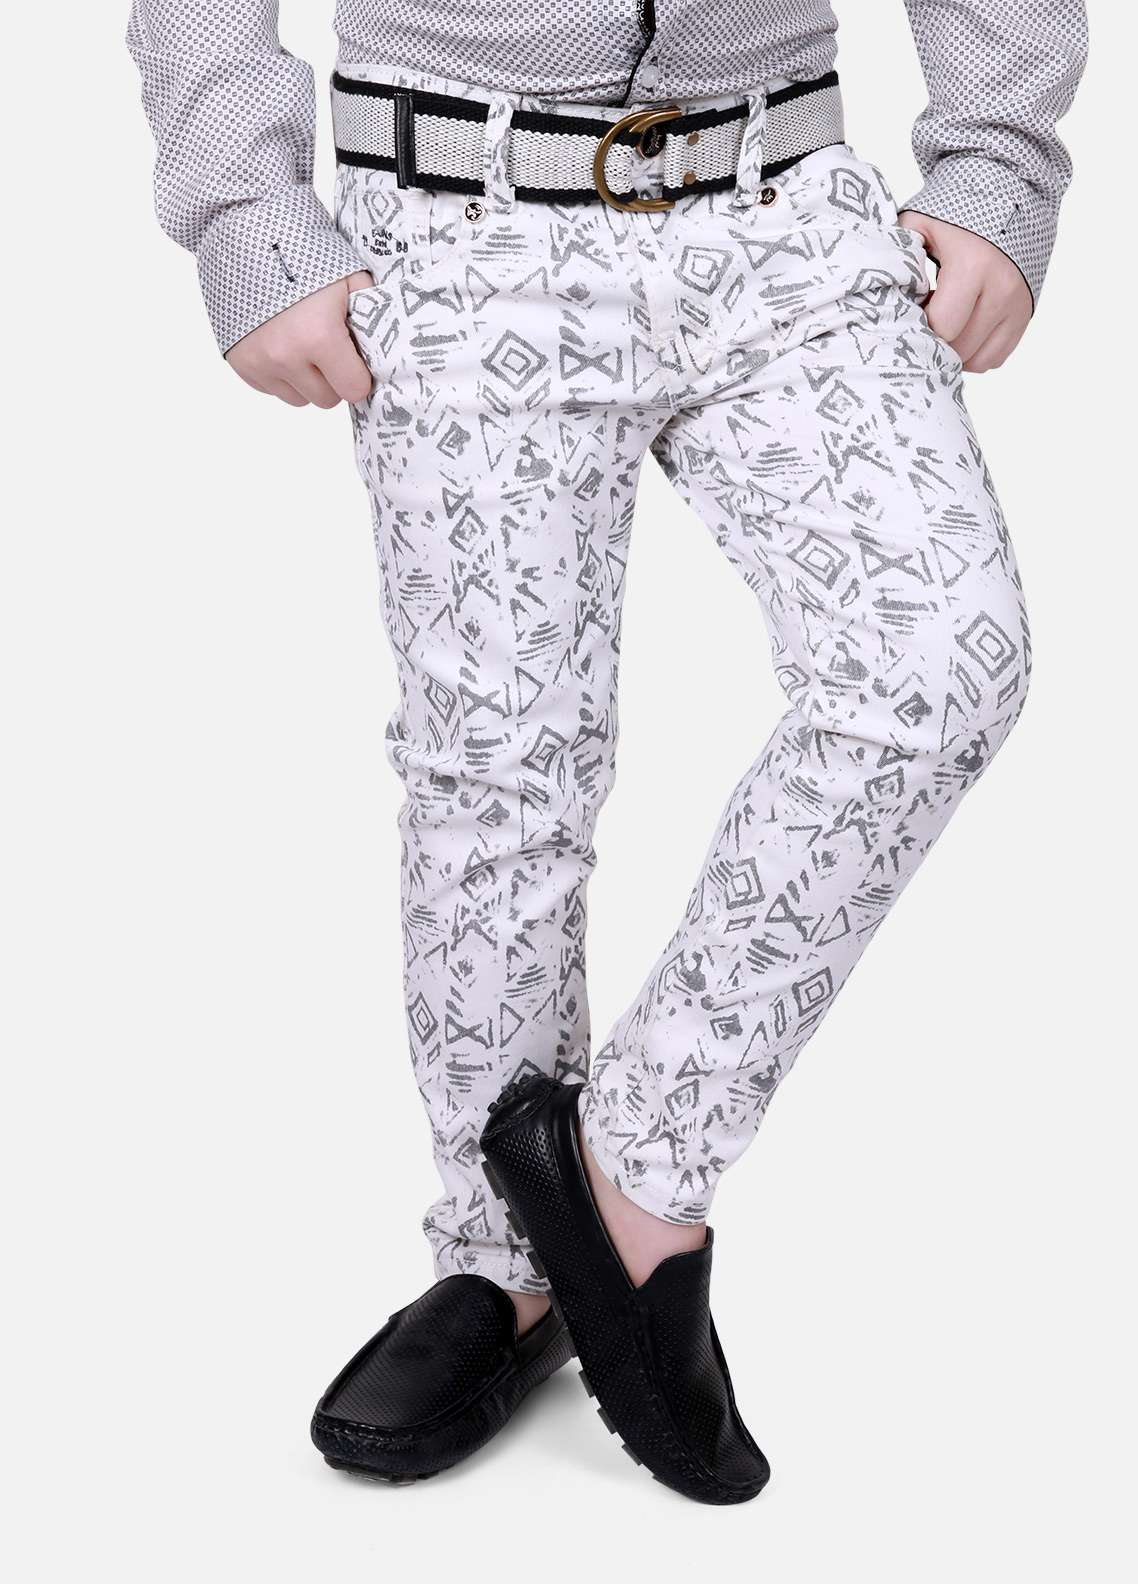 Edenrobe Cotton Printed Boys Pants - White EDK18P 5705